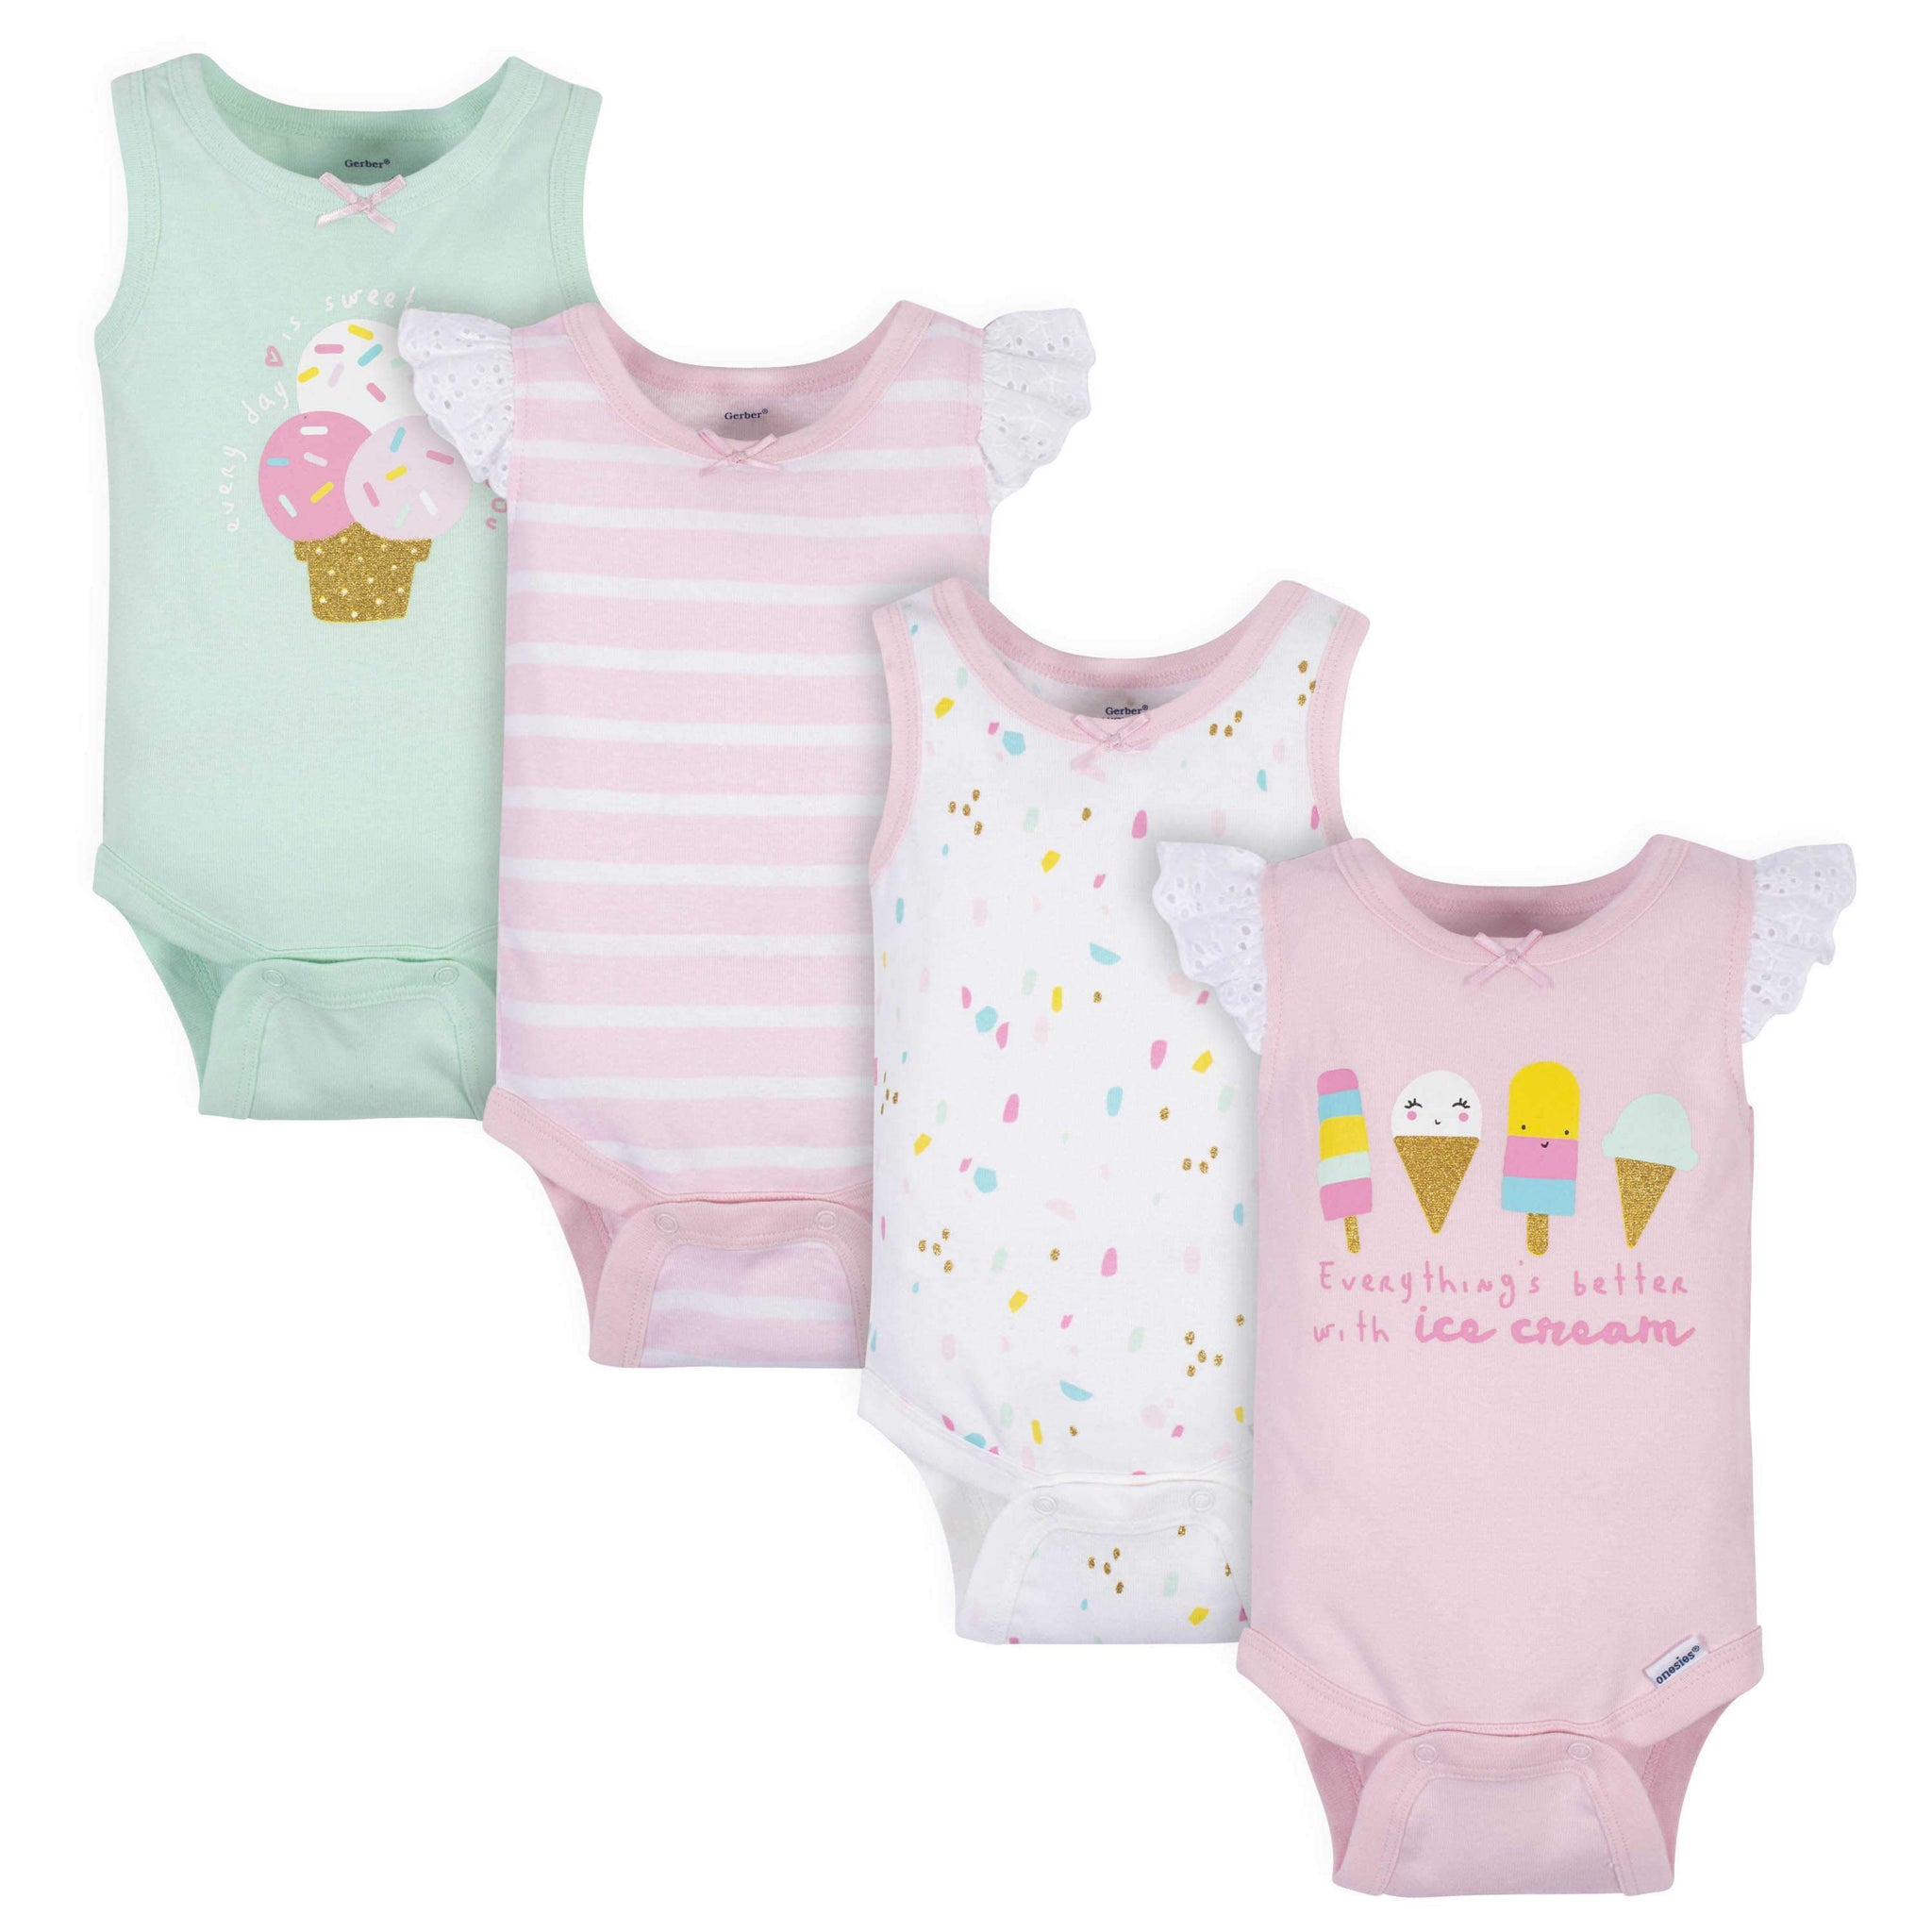 4-Pack Baby Girls Ice Cream Tank Onesies Bodysuits